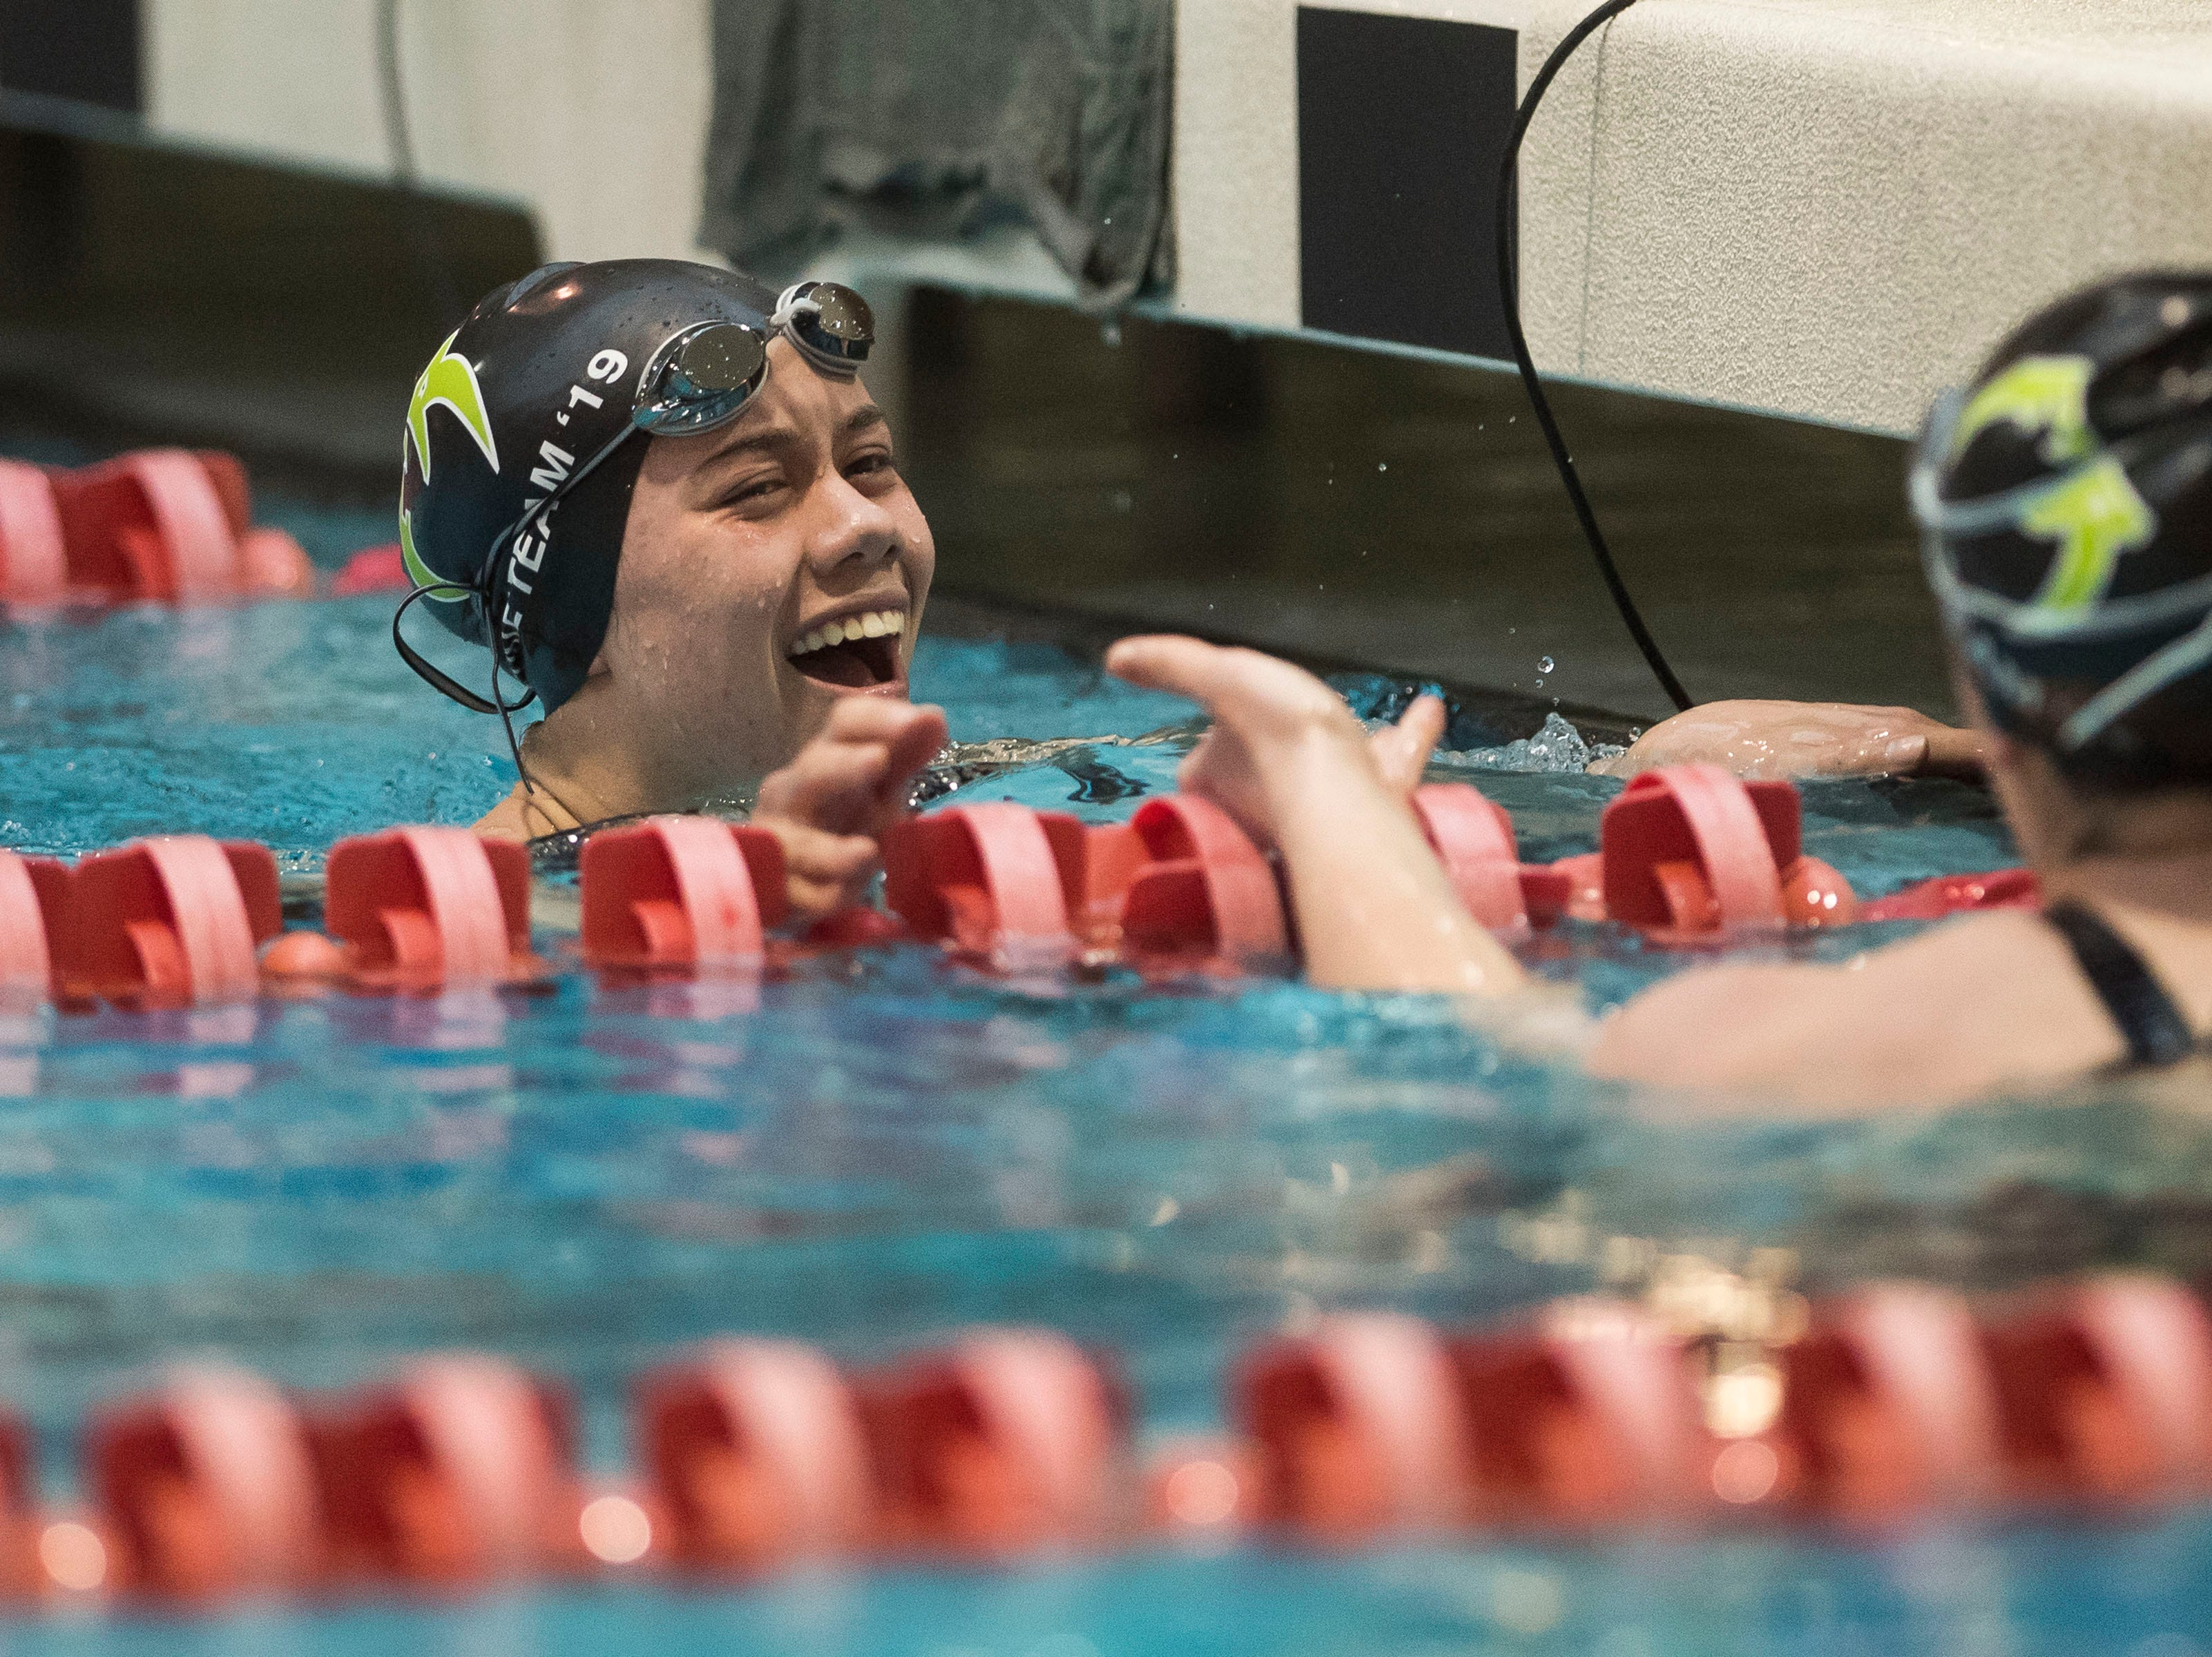 Fossil Ridge freshman Lucy Bell reaches for junior teammate Caraline Baker after winning the women's 100 yard butterfly on Saturday, Feb. 9, 2019, at Veterans Memorial Aquatic Center in Thornton, Colo.